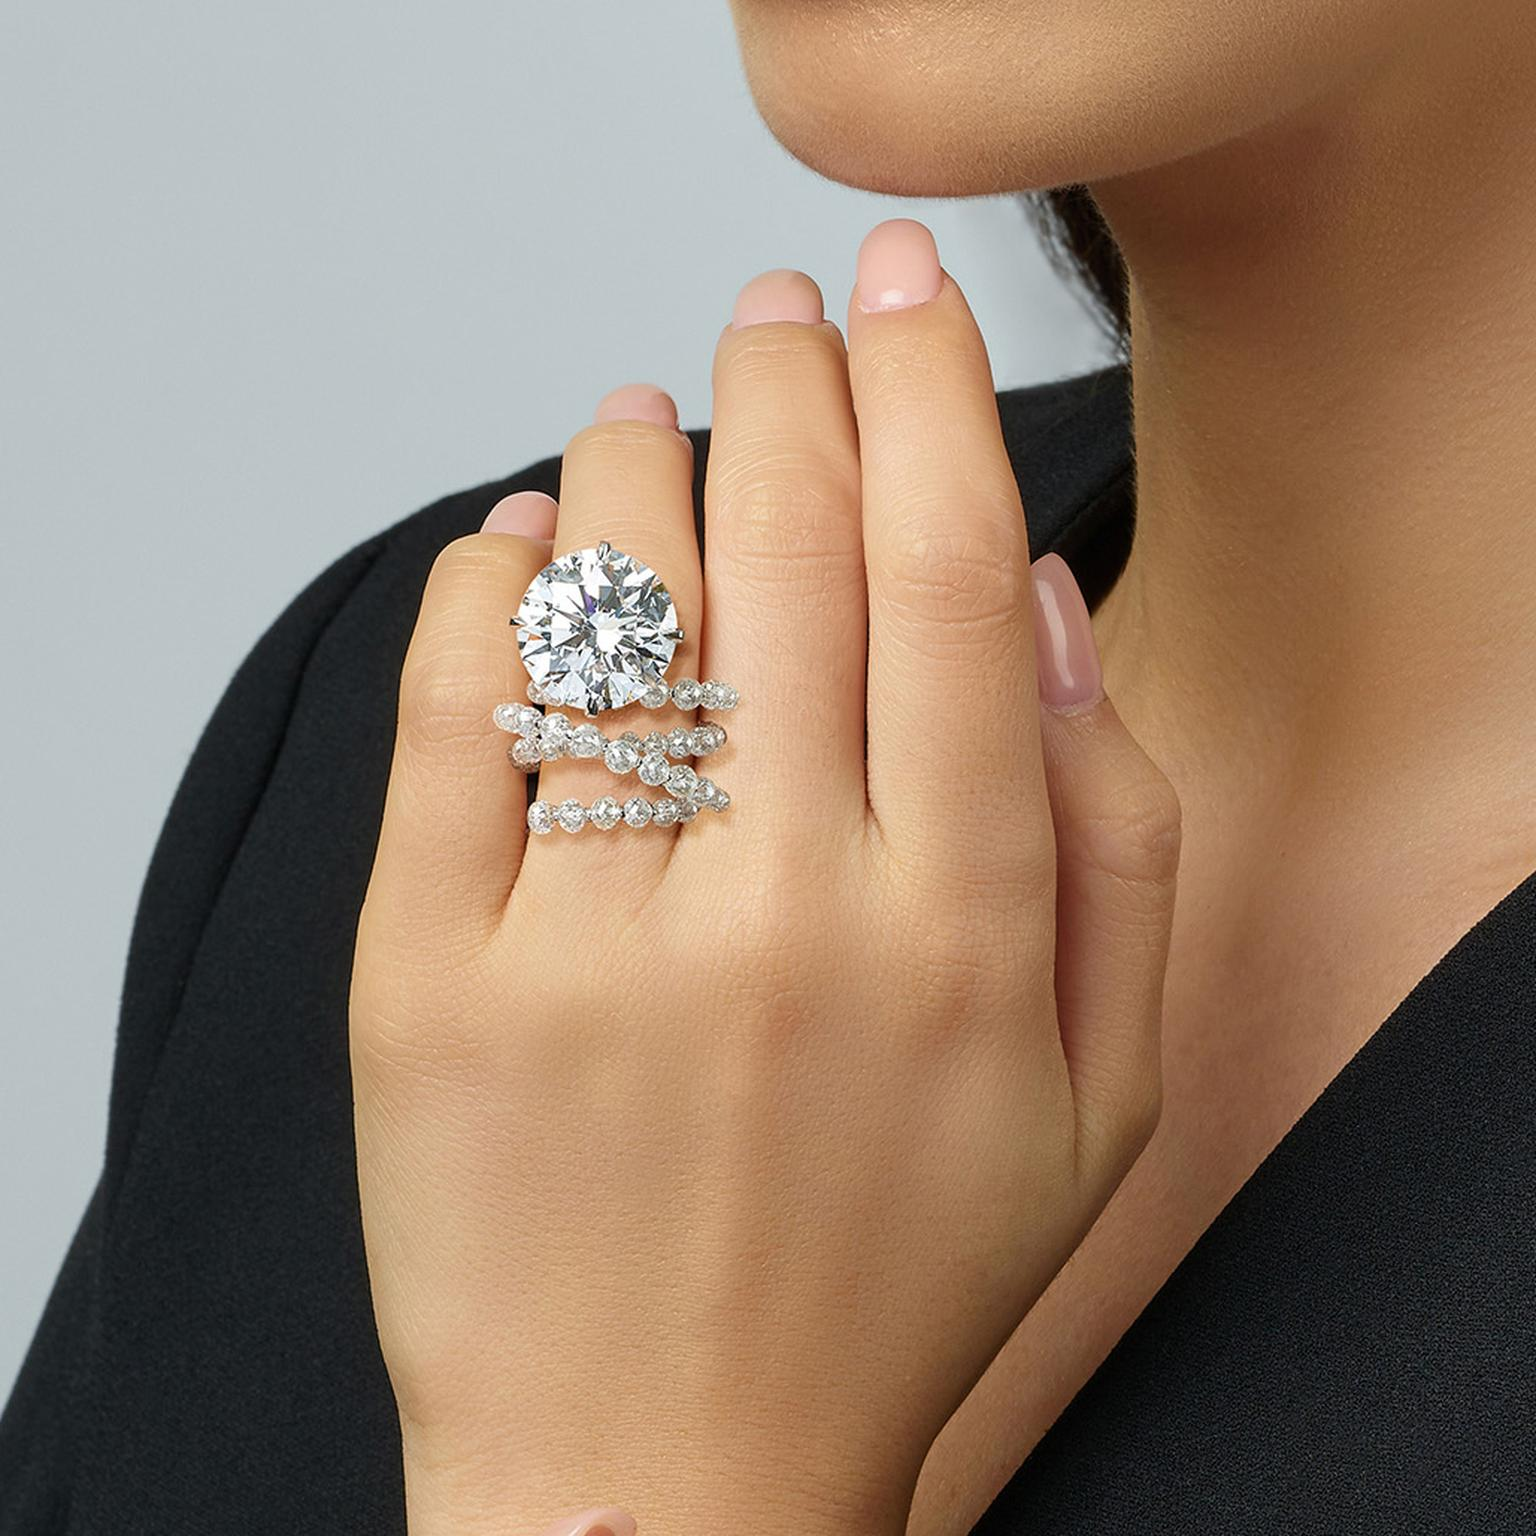 Lot 648 Fountain of Diamonds ring by Feng J on model